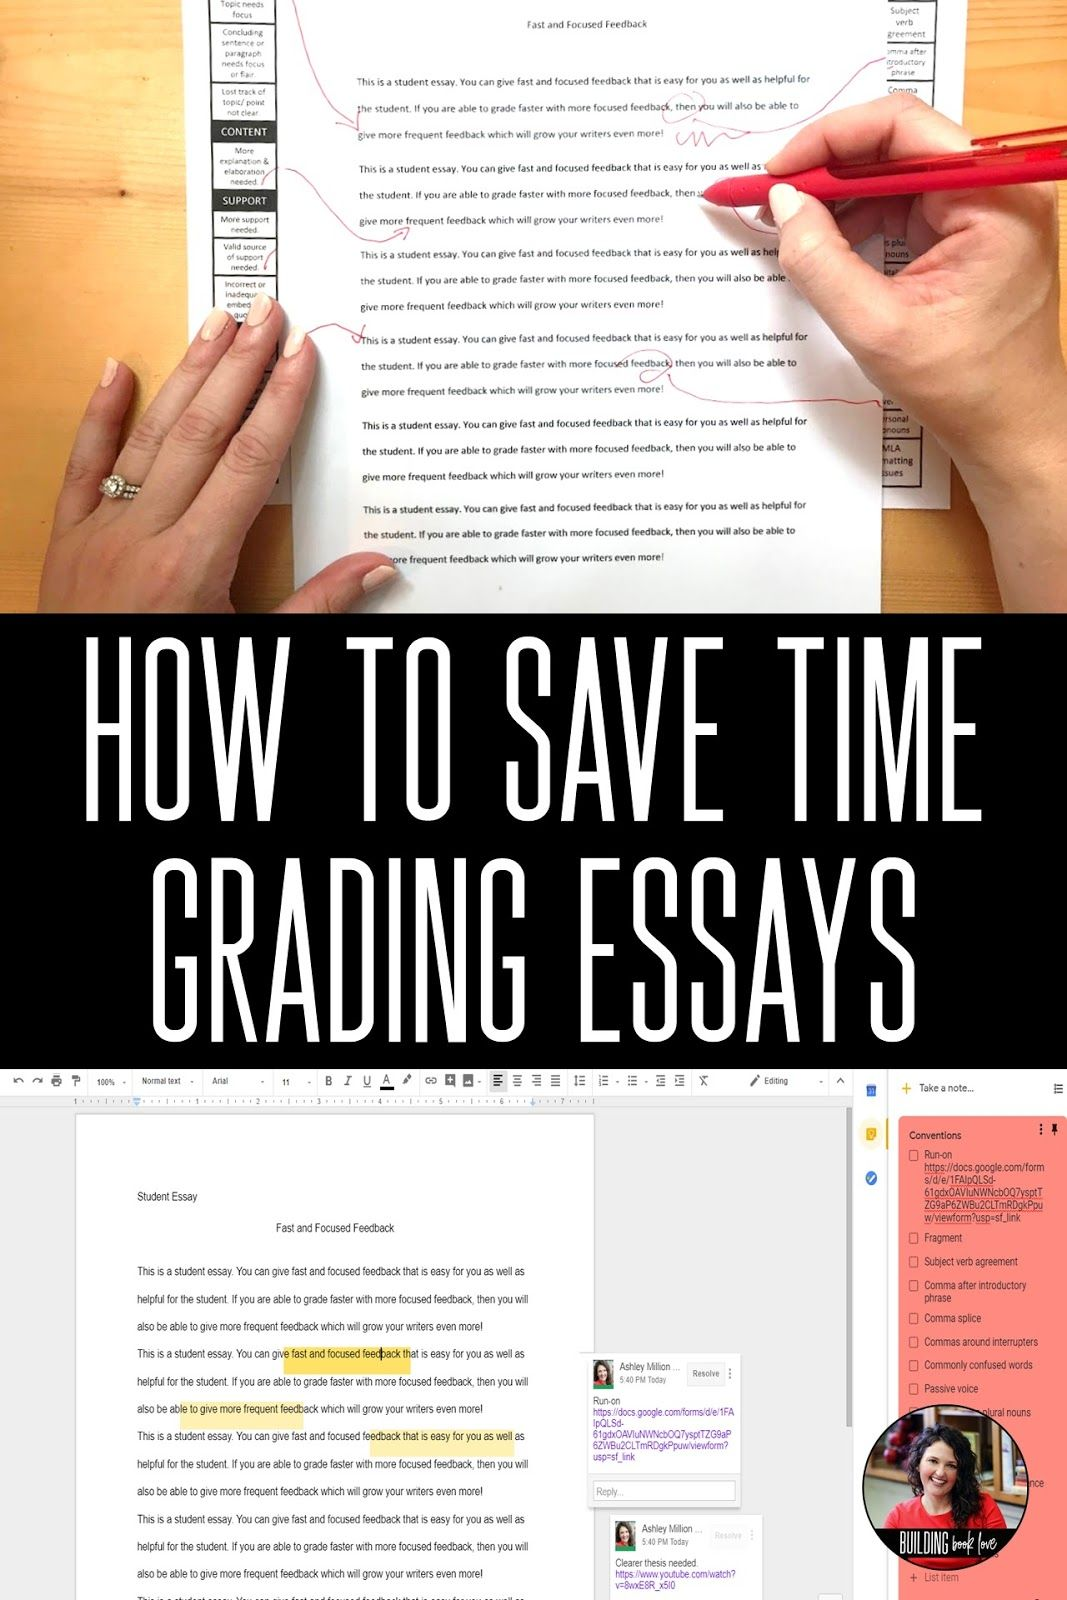 Purpose Of Thesis Statement In An Essay How To Save Time Grading Essays Advanced English Ap English Teaching  Time Teaching Examples Of English Essays also Essay Writing For High School Students  Essay Grading Tips For Grading Essays Faster And More Efficiently  Thesis Statement Analytical Essay